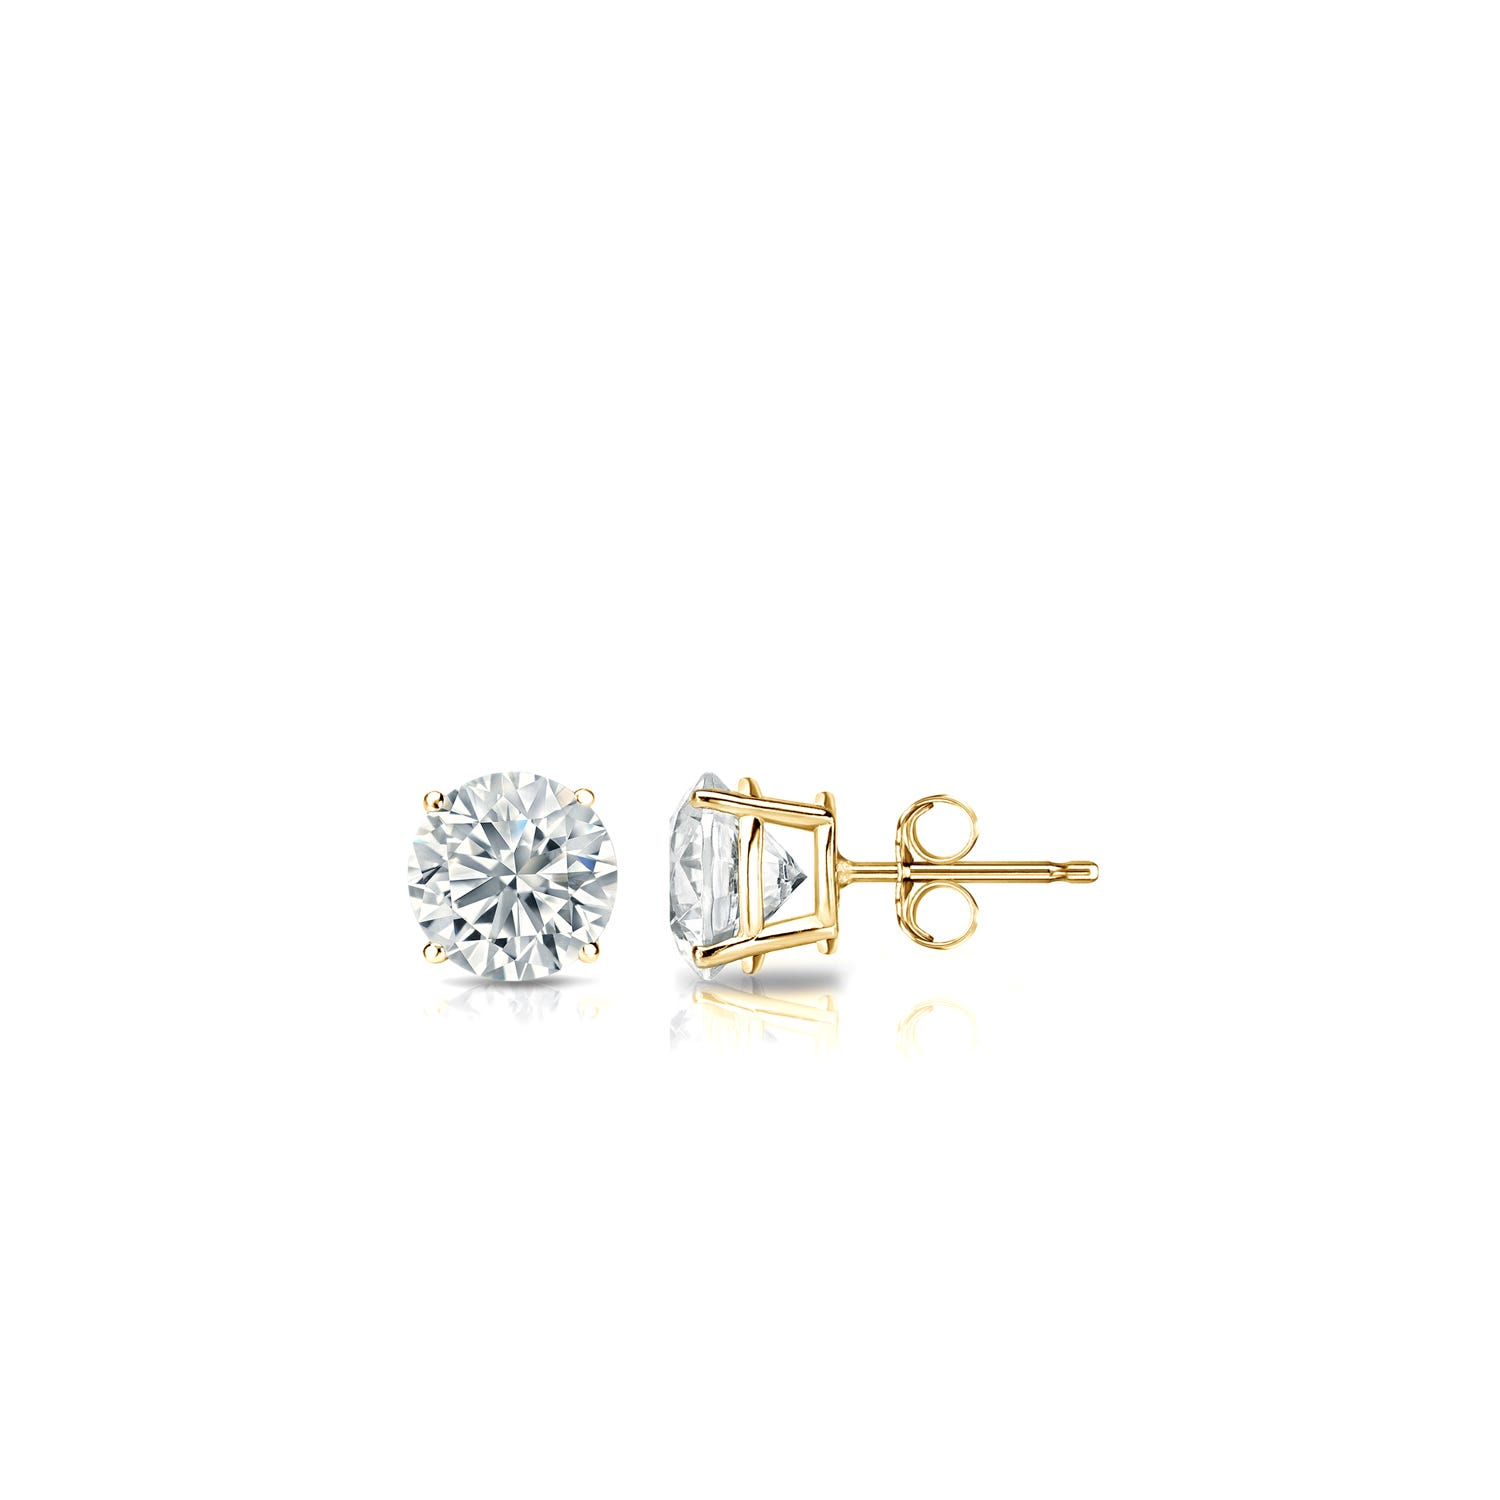 Diamond 1/10ctw. Round Solitaire Stud Earrings (I-J, SI2) 14k Yellow Gold